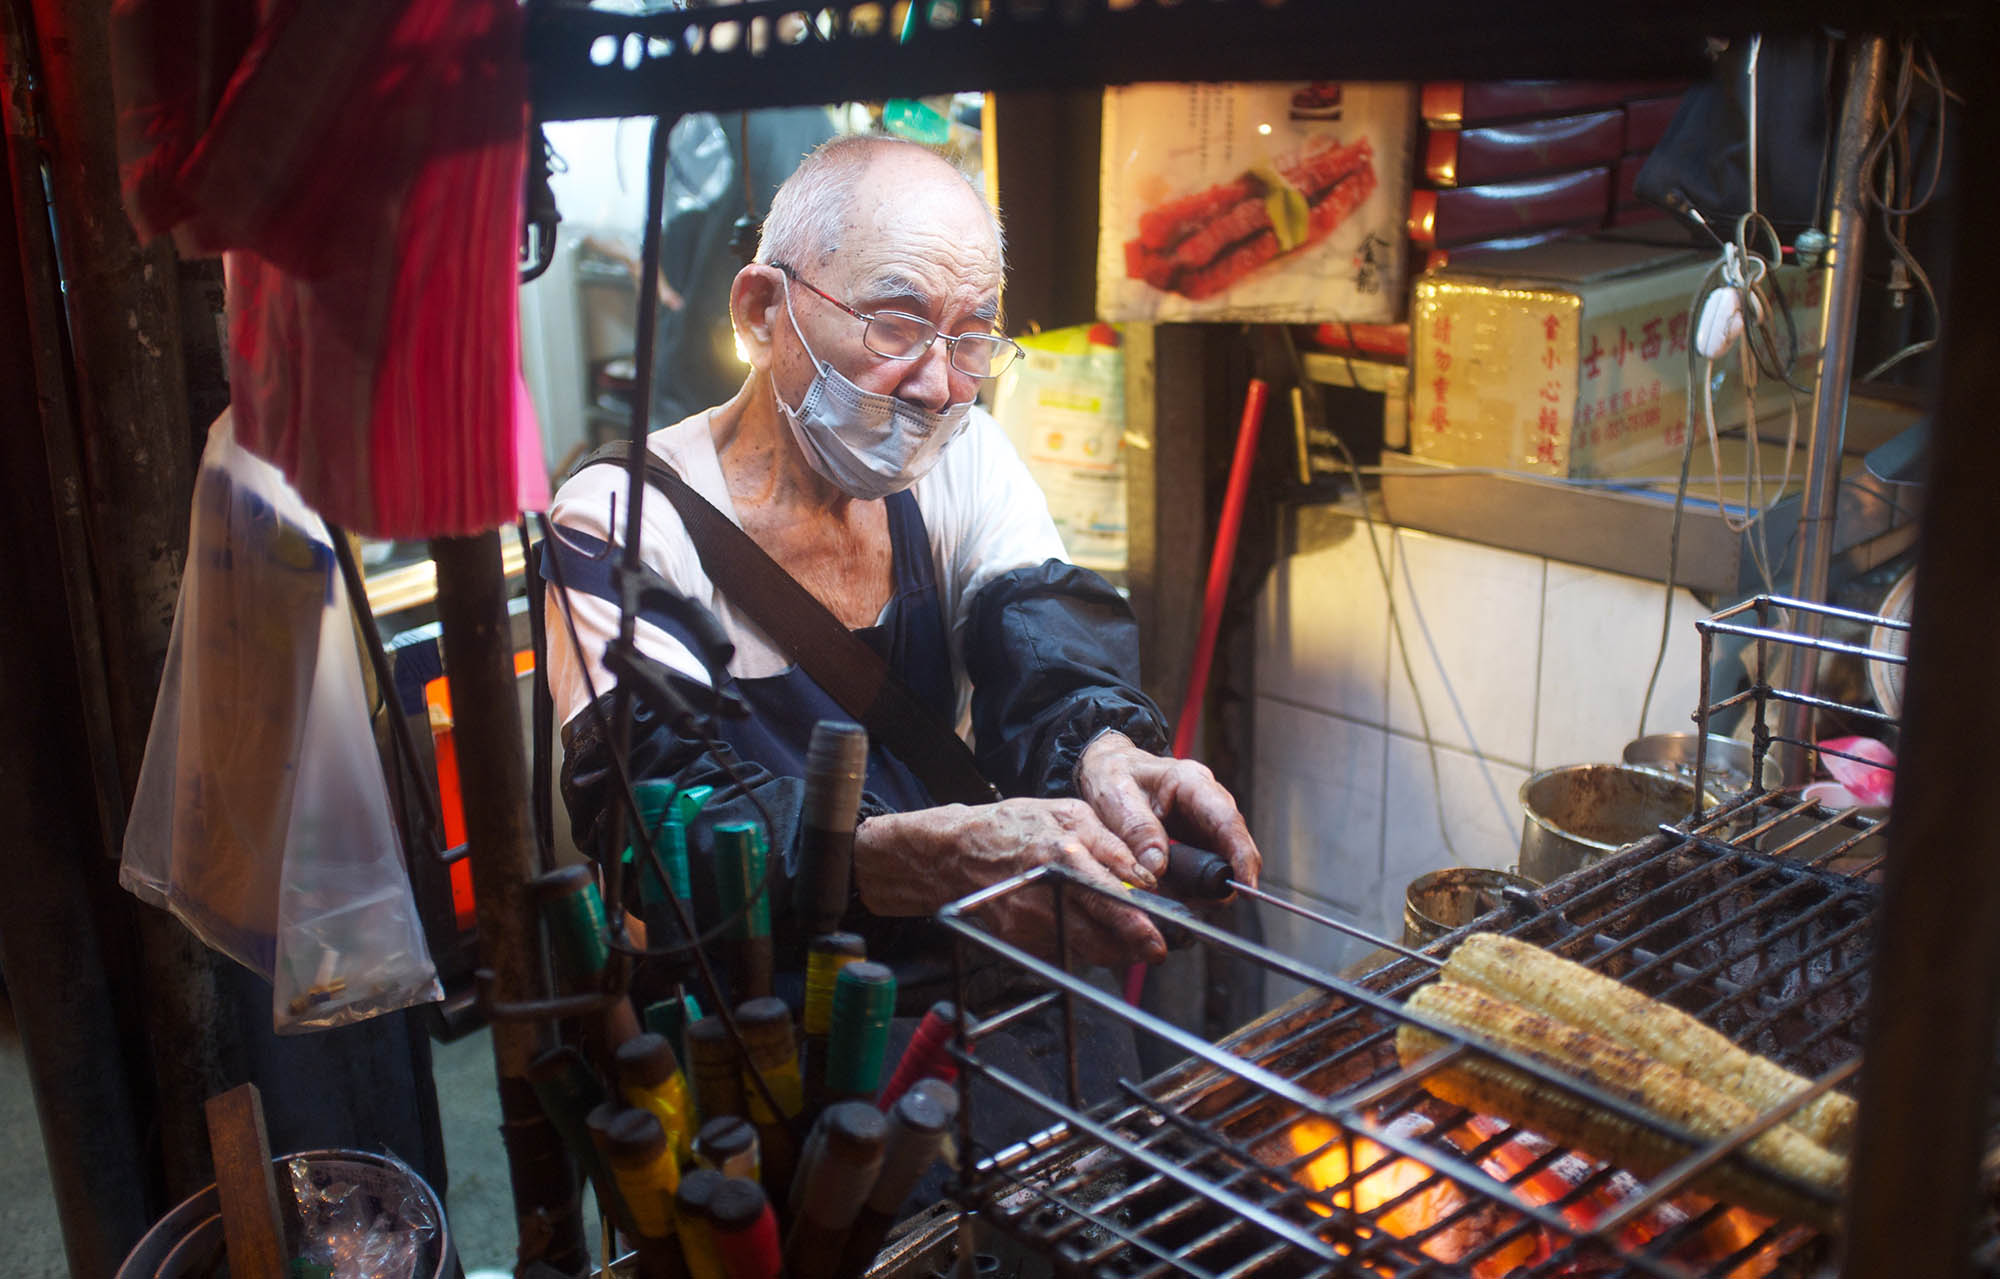 Owner of the stall grills corn and sausages.